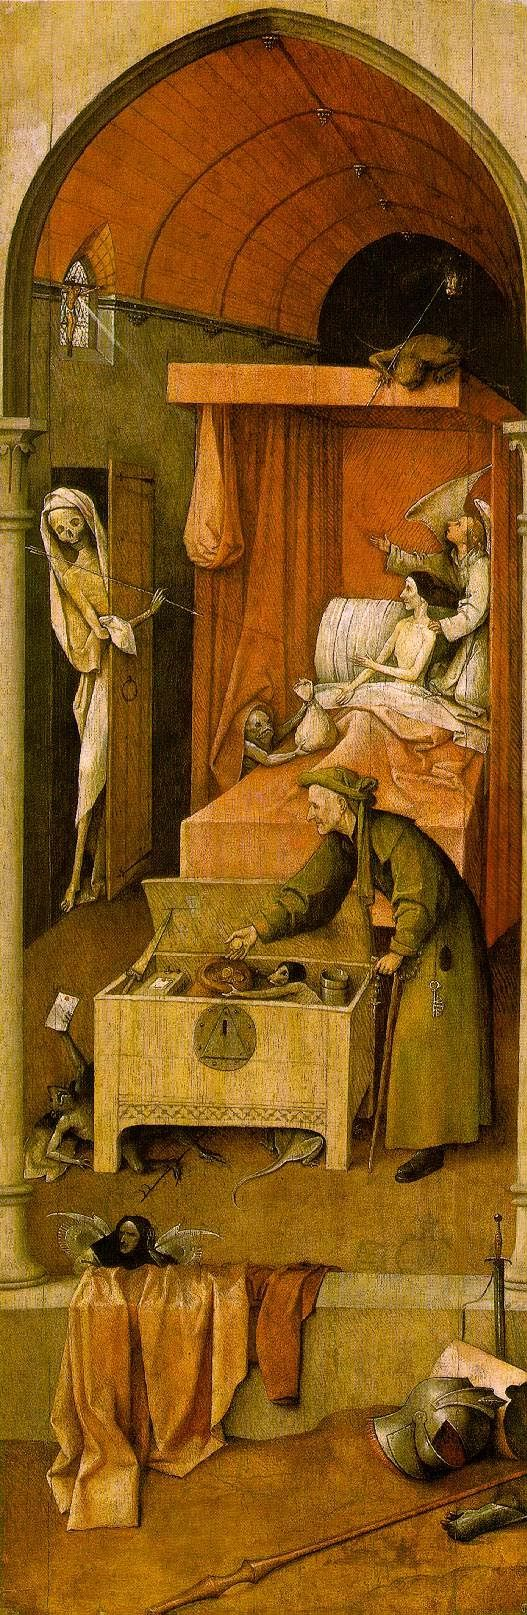 The Daily Muse: Hieronymus Bosch, Painter (1450 –1516) Curated by Elusive Muse http://elusivemu.se/hieronymus-bosch/: